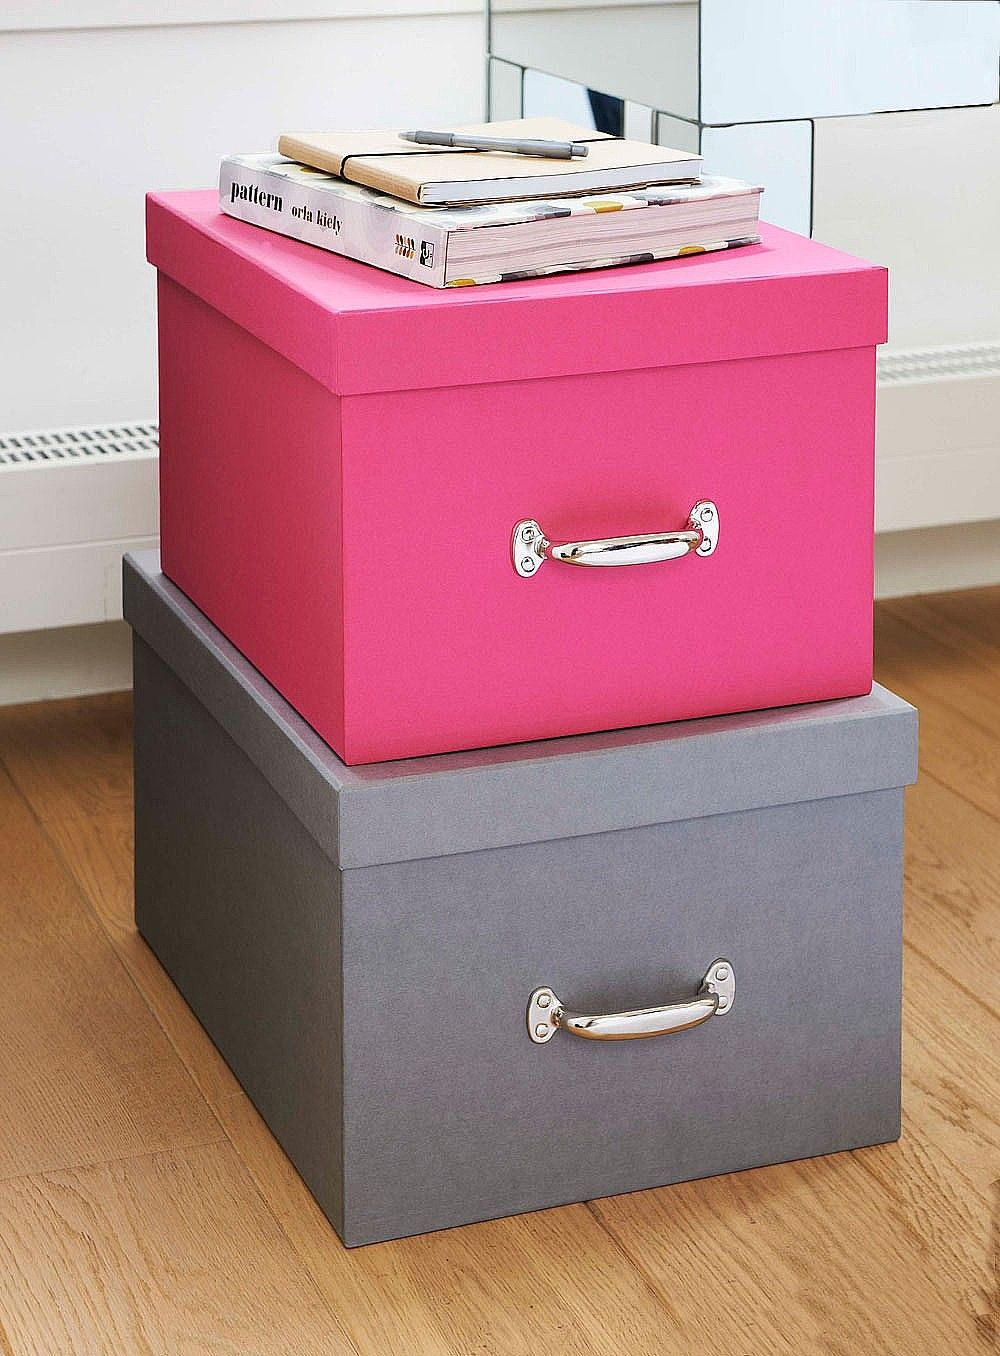 Get your storage sorted with these large volume Fibreboard Storage Boxes  perfect for the bedroom, office or living room. From Bigso Box Of Sweden.